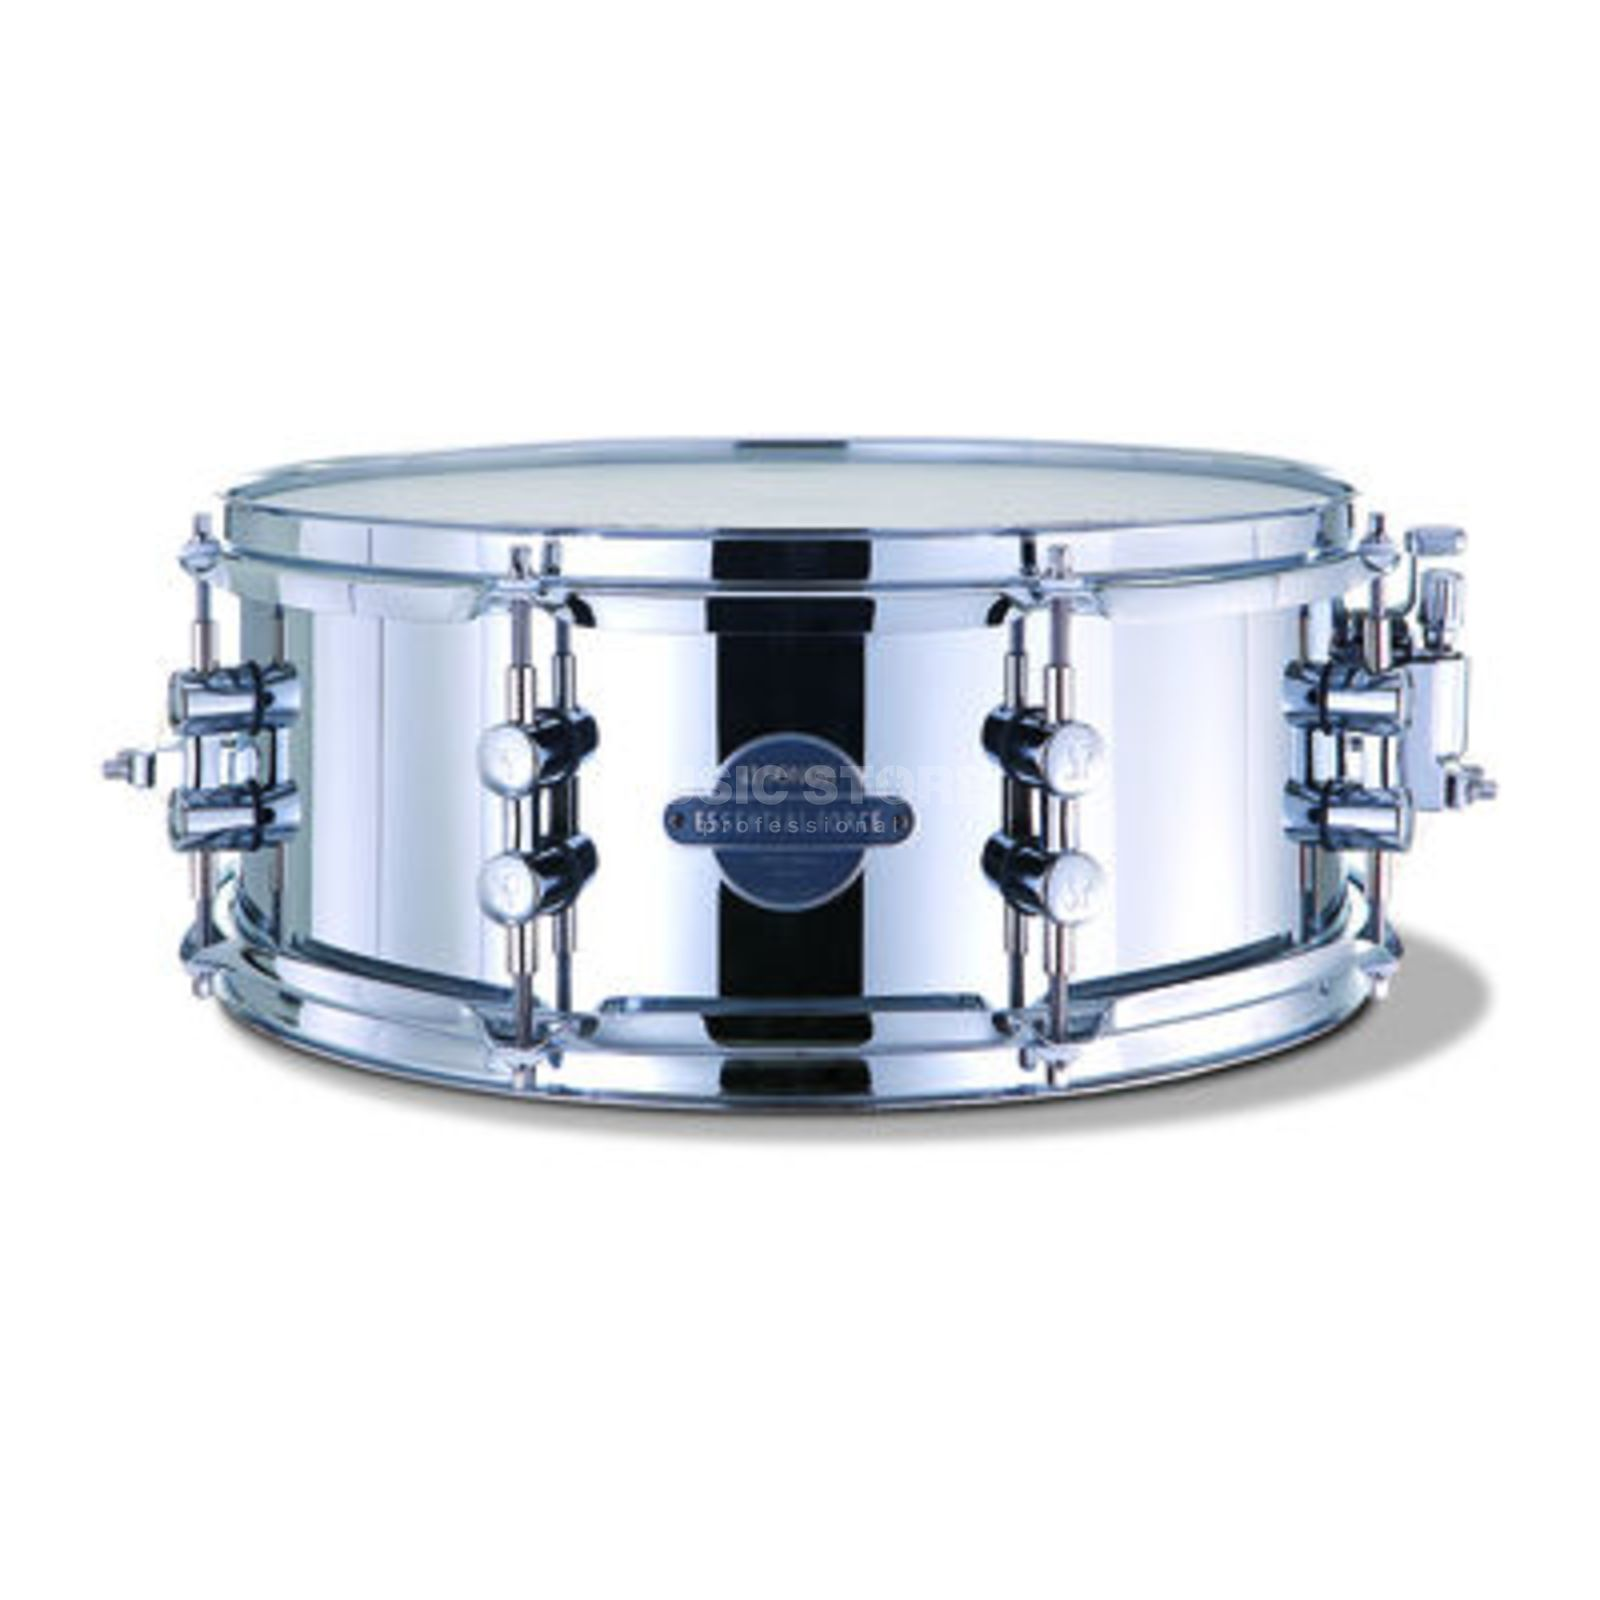 "Sonor ESF1455 Essential Force Snare 14""x5,5"", Steel Produktbillede"